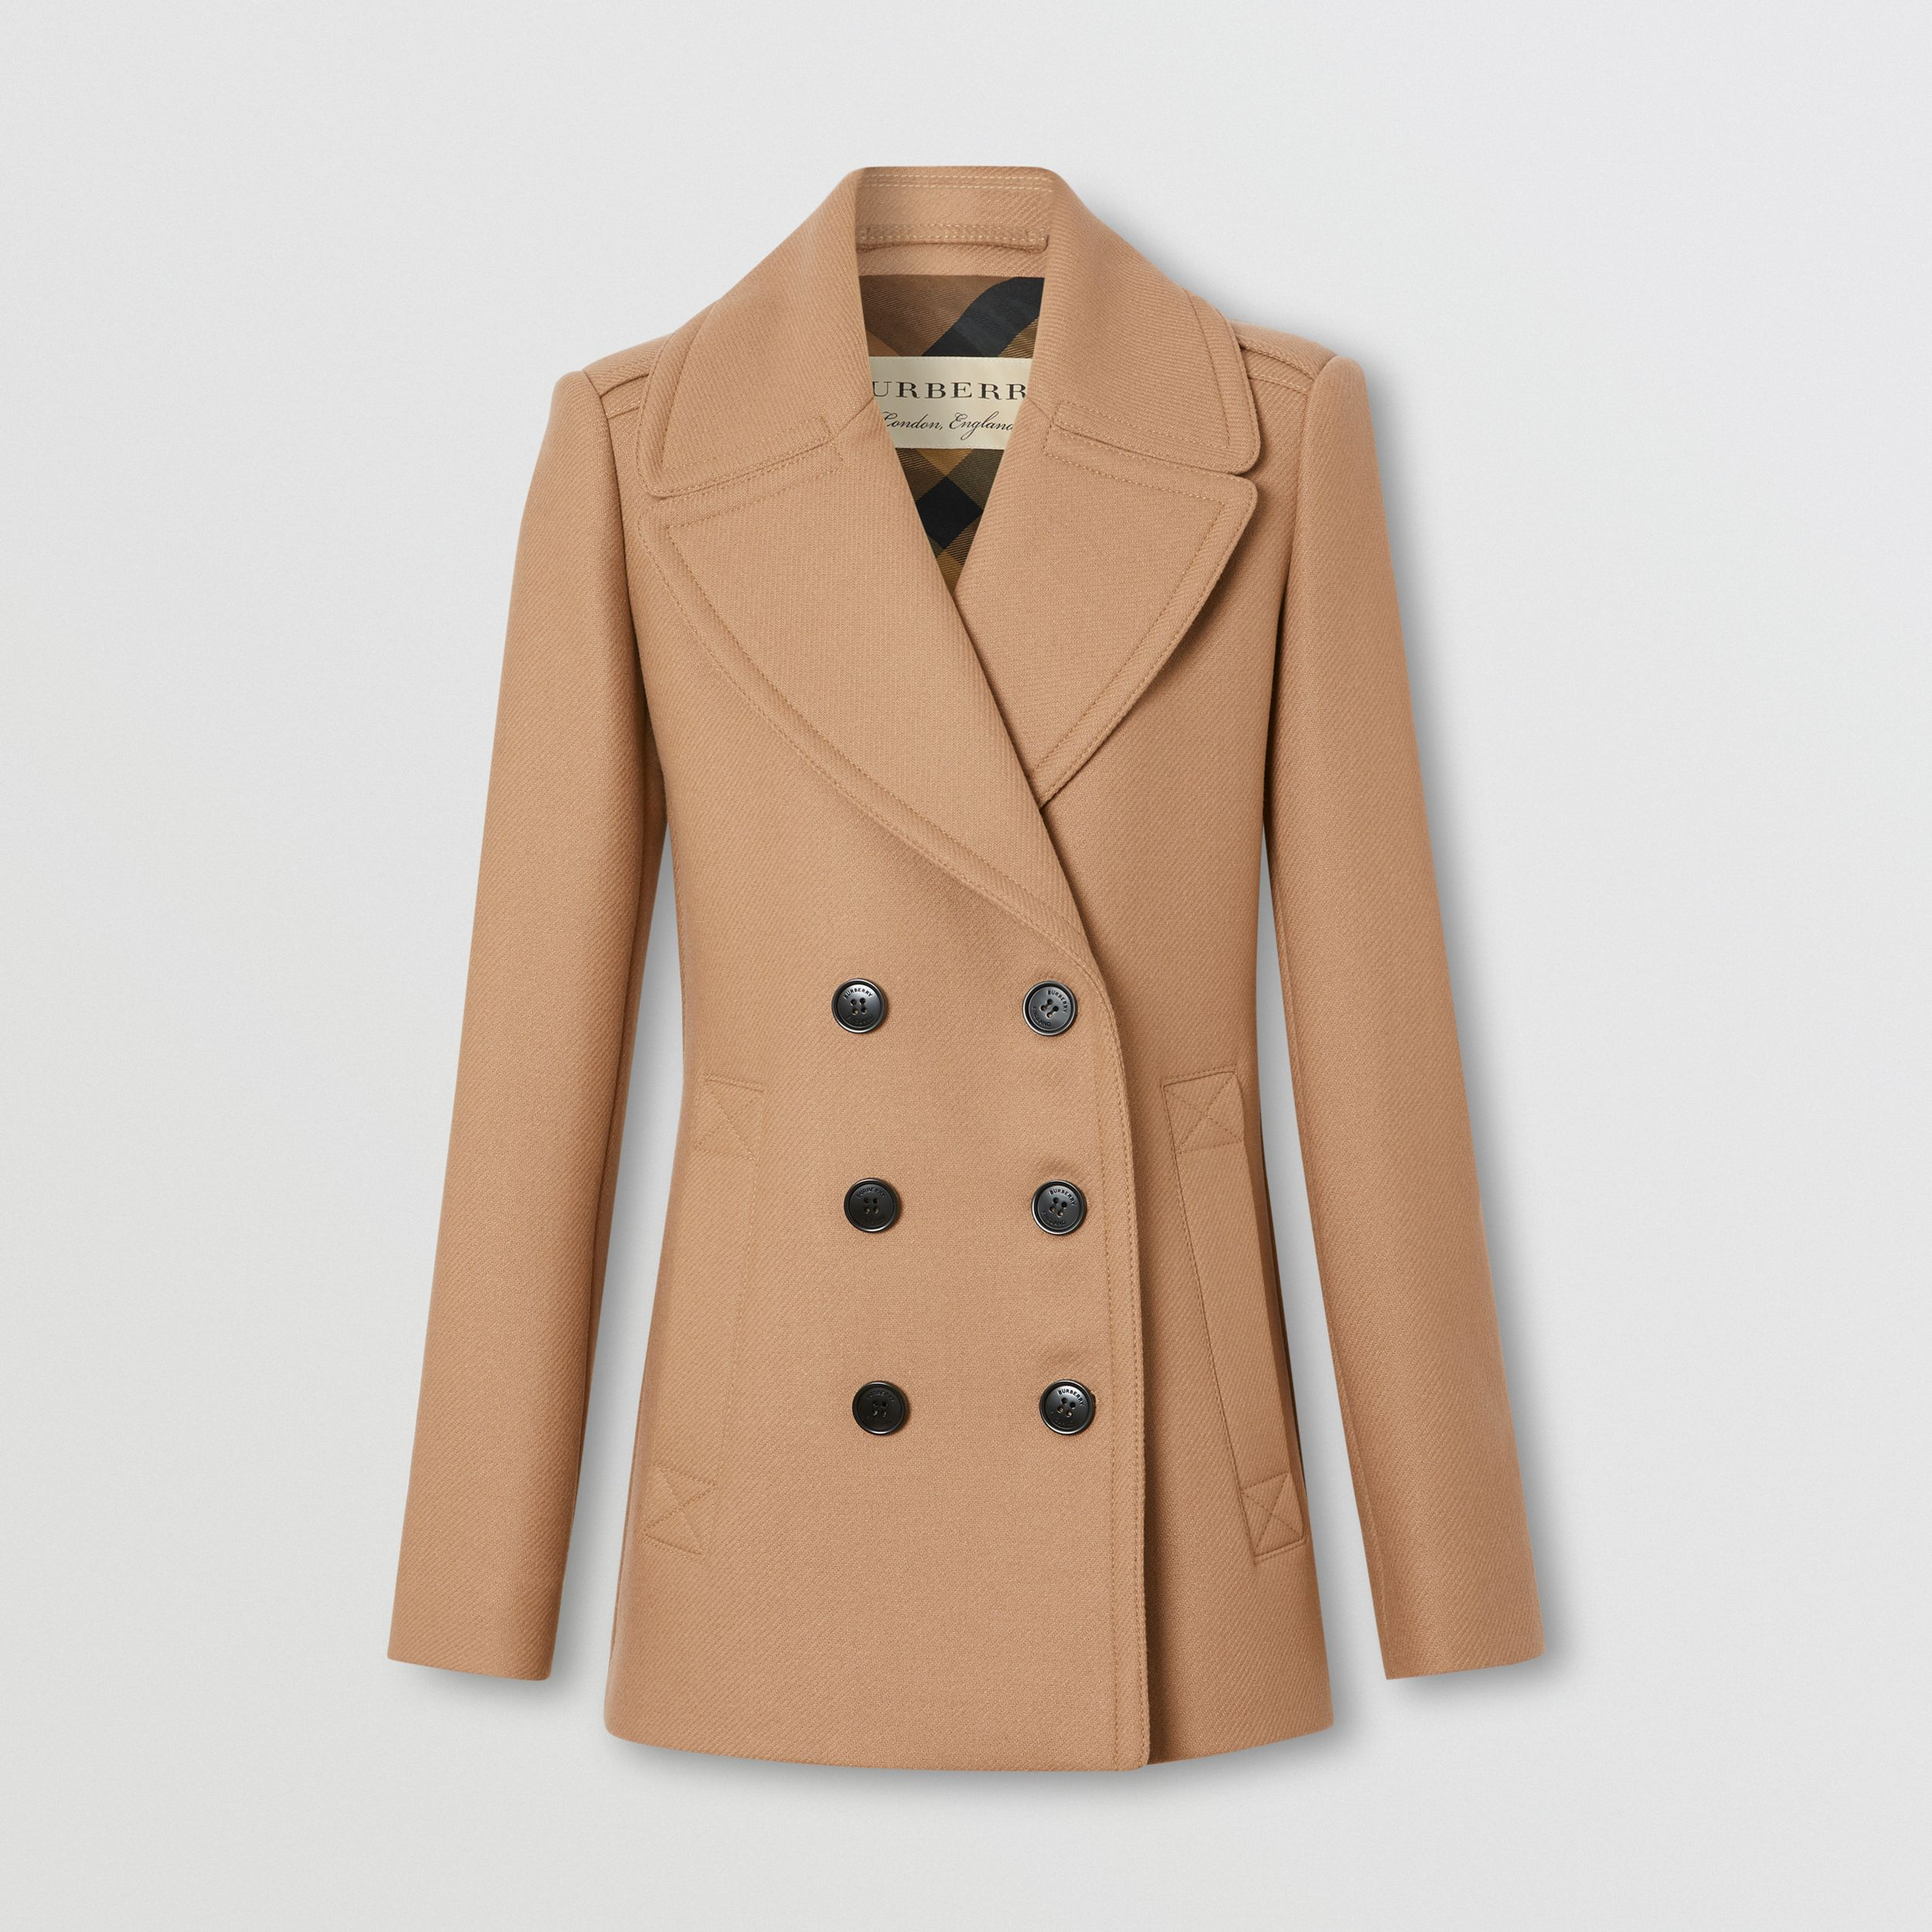 Wool Cashmere Blend Pea Coat in Camel - Women | Burberry - 1